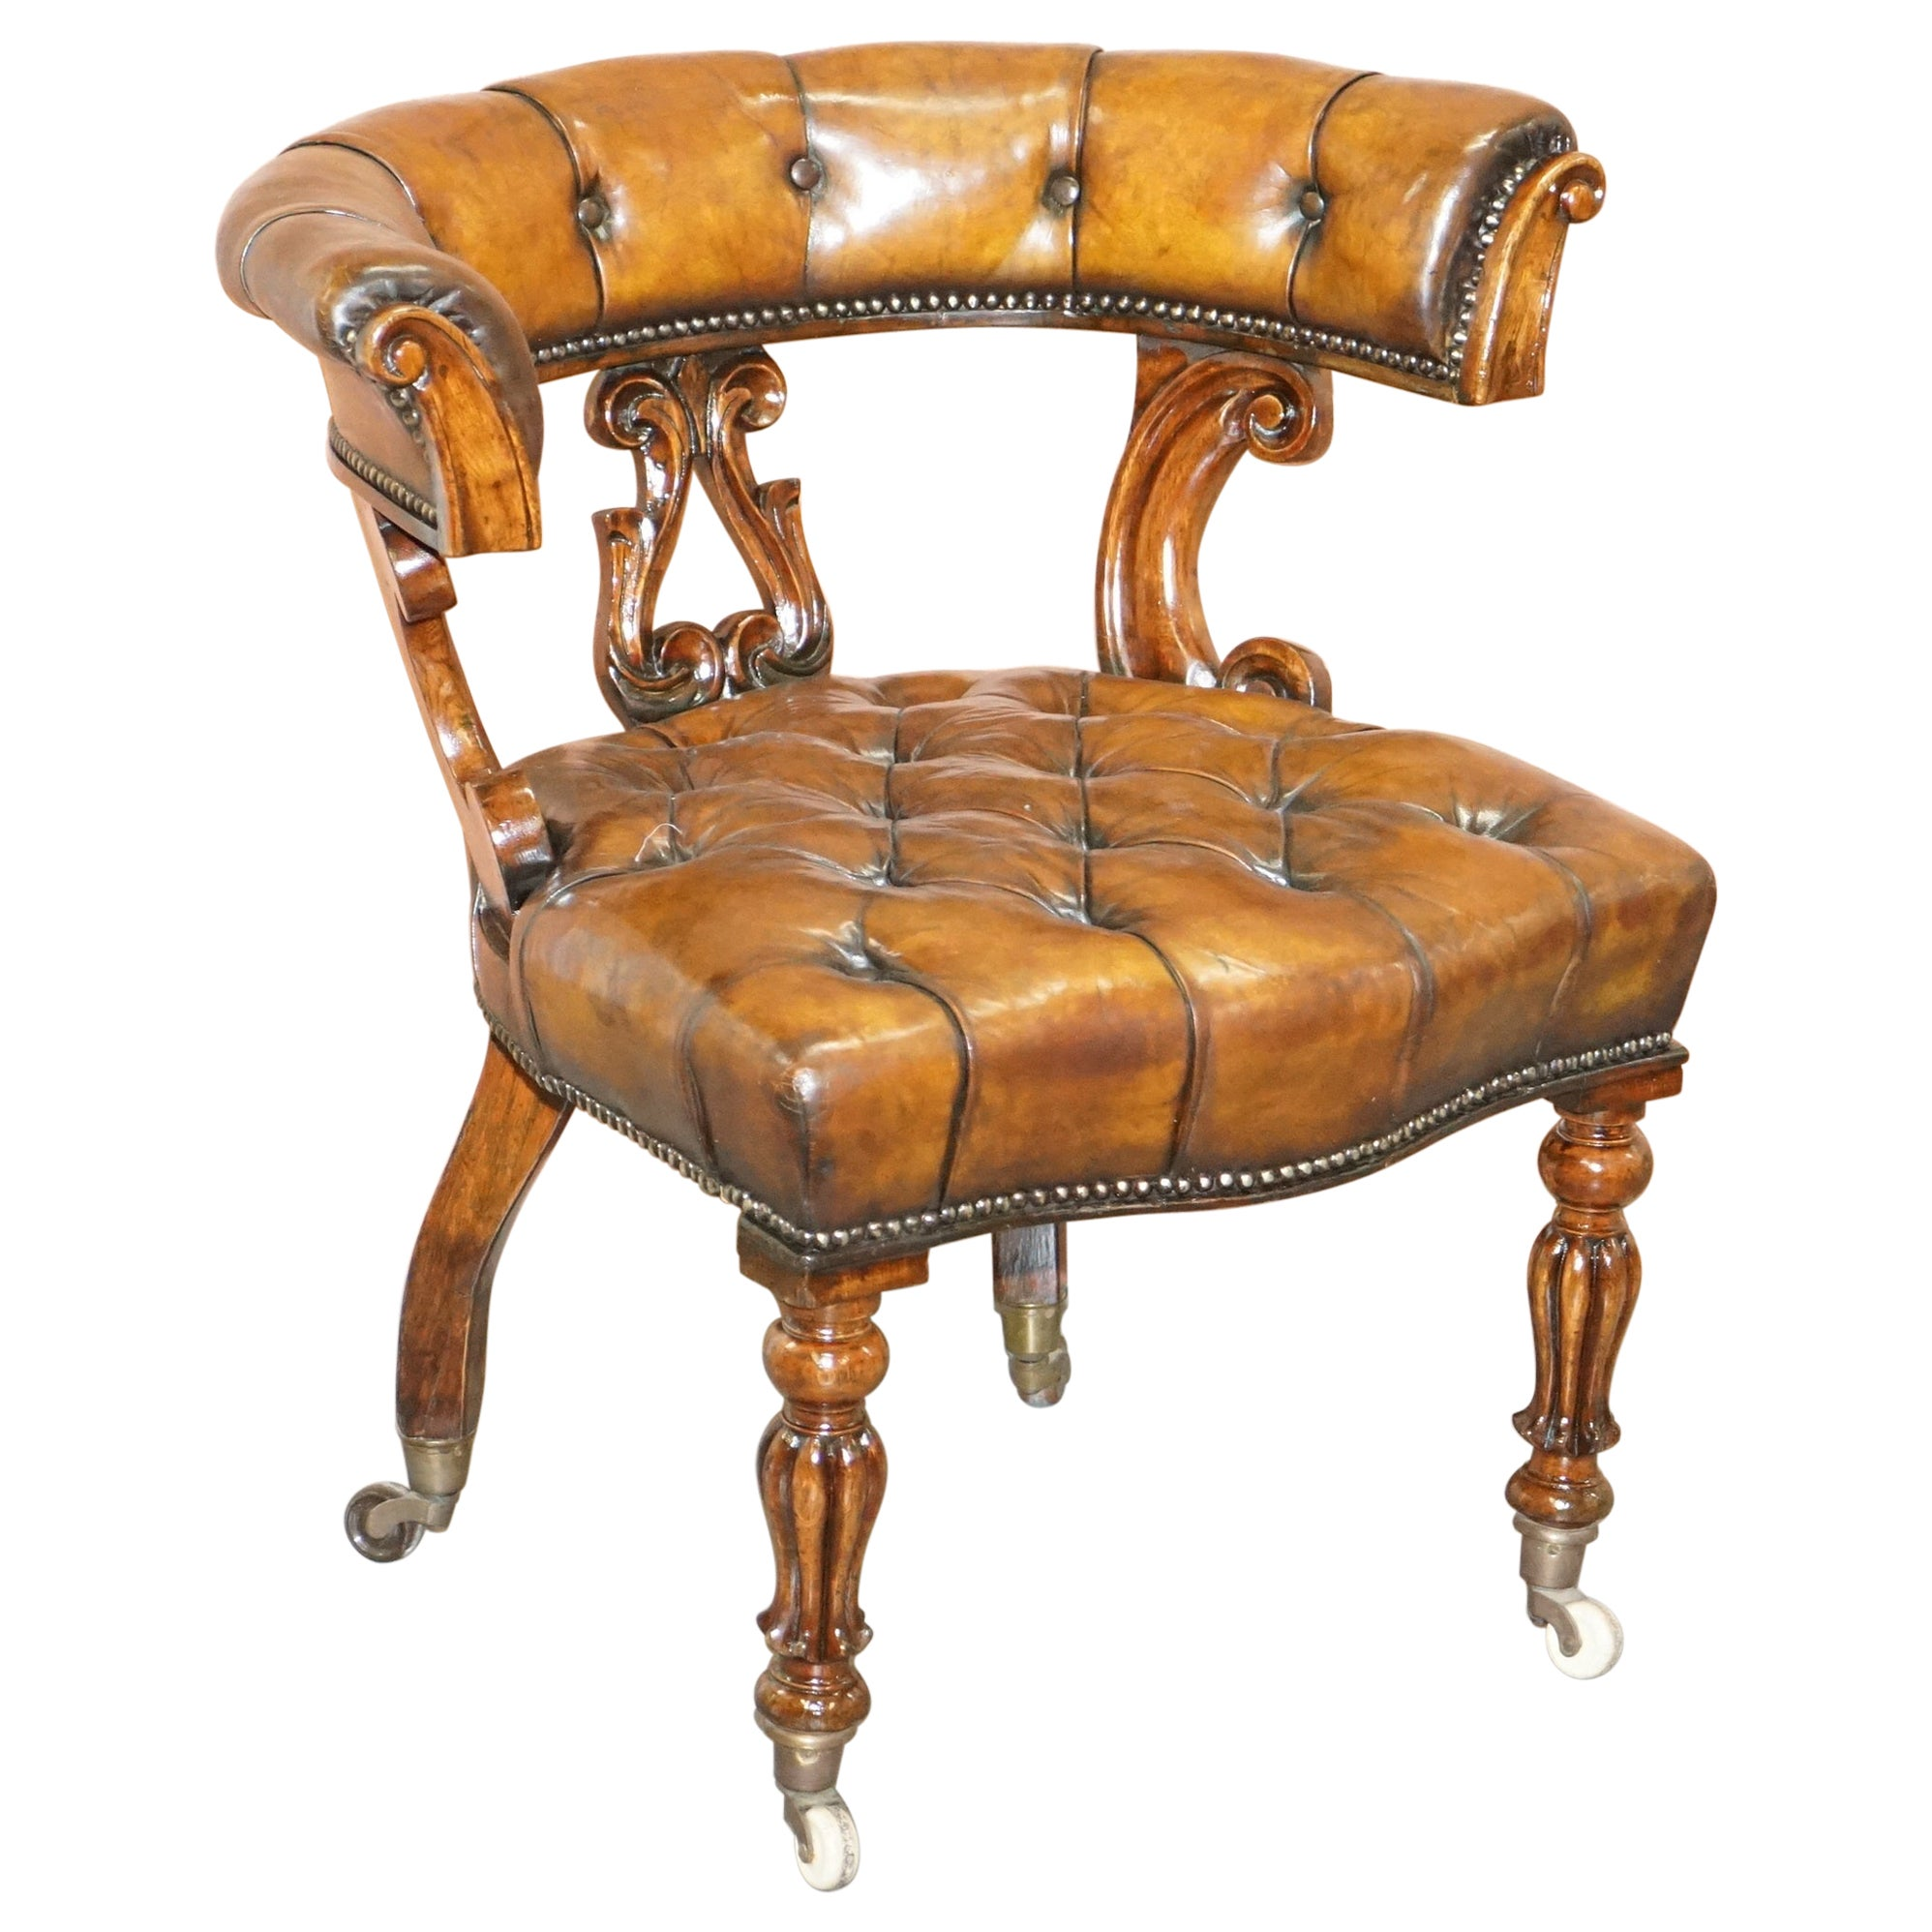 Antique William IV Aged Brown Leather Chesterfield Fully Restored Captains Chair